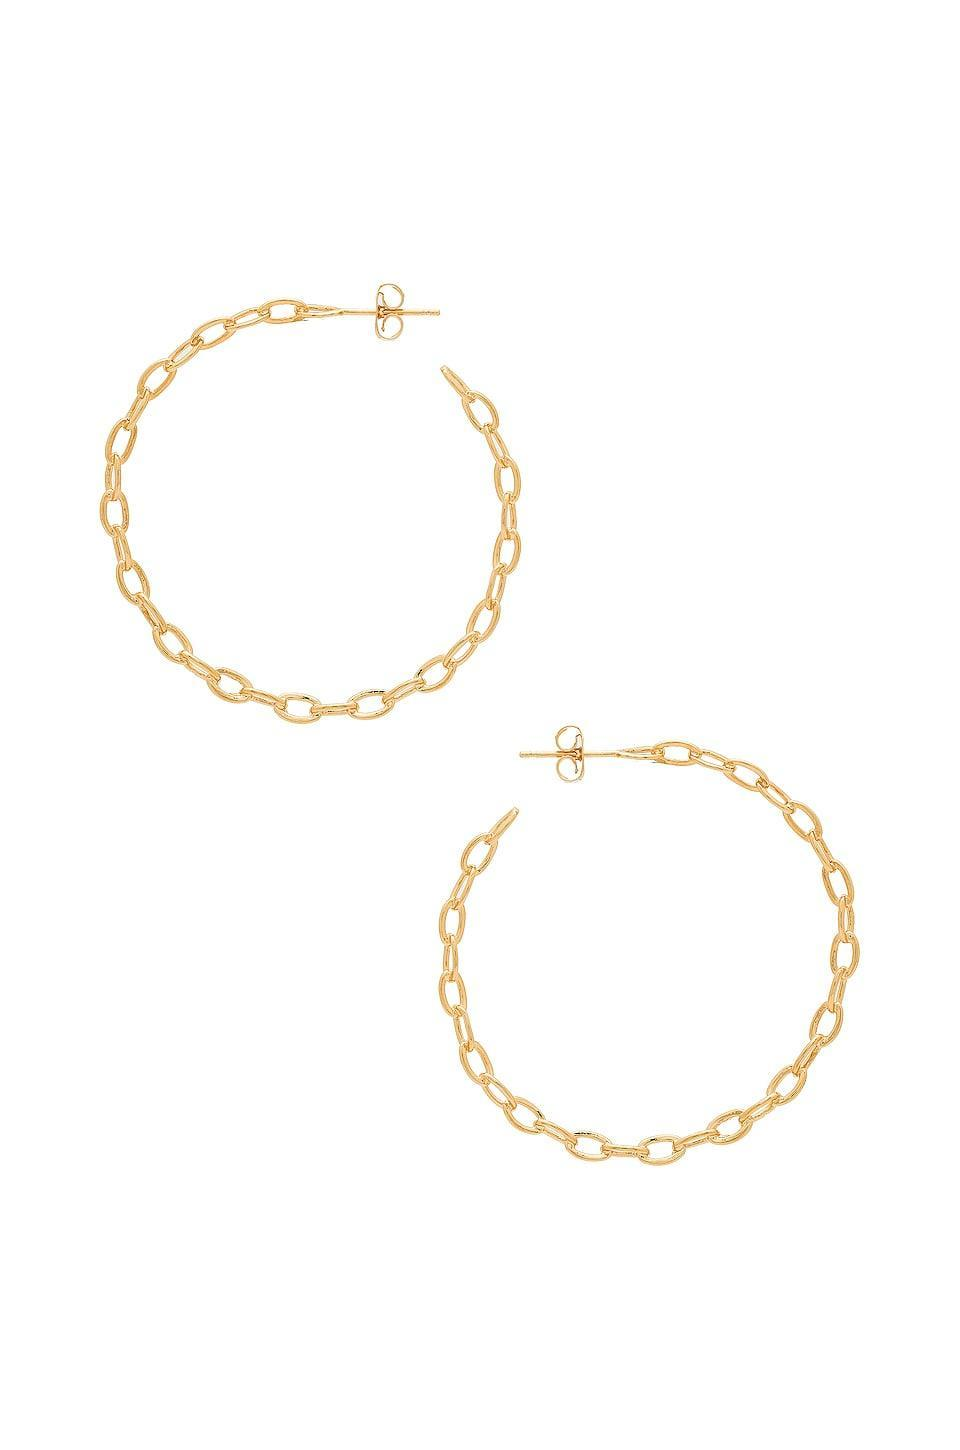 """<p><a href=""""https://www.popsugar.com/buy/Five-Two-Alicia-Hoops-497269?p_name=Five%20and%20Two%20Alicia%20Hoops&retailer=revolve.com&pid=497269&price=40&evar1=fab%3Aus&evar9=46708649&evar98=https%3A%2F%2Fwww.popsugar.com%2Ffashion%2Fphoto-gallery%2F46708649%2Fimage%2F46709063%2FFive-Two-Alicia-Hoops&list1=shopping%2Cjewelry%2Cunder%20%2450%2Caffordable%20shopping%2Cjewelry%20shopping&prop13=mobile&pdata=1"""" rel=""""nofollow noopener"""" class=""""link rapid-noclick-resp"""" target=""""_blank"""" data-ylk=""""slk:Five and Two Alicia Hoops"""">Five and Two Alicia Hoops</a> ($40)</p>"""